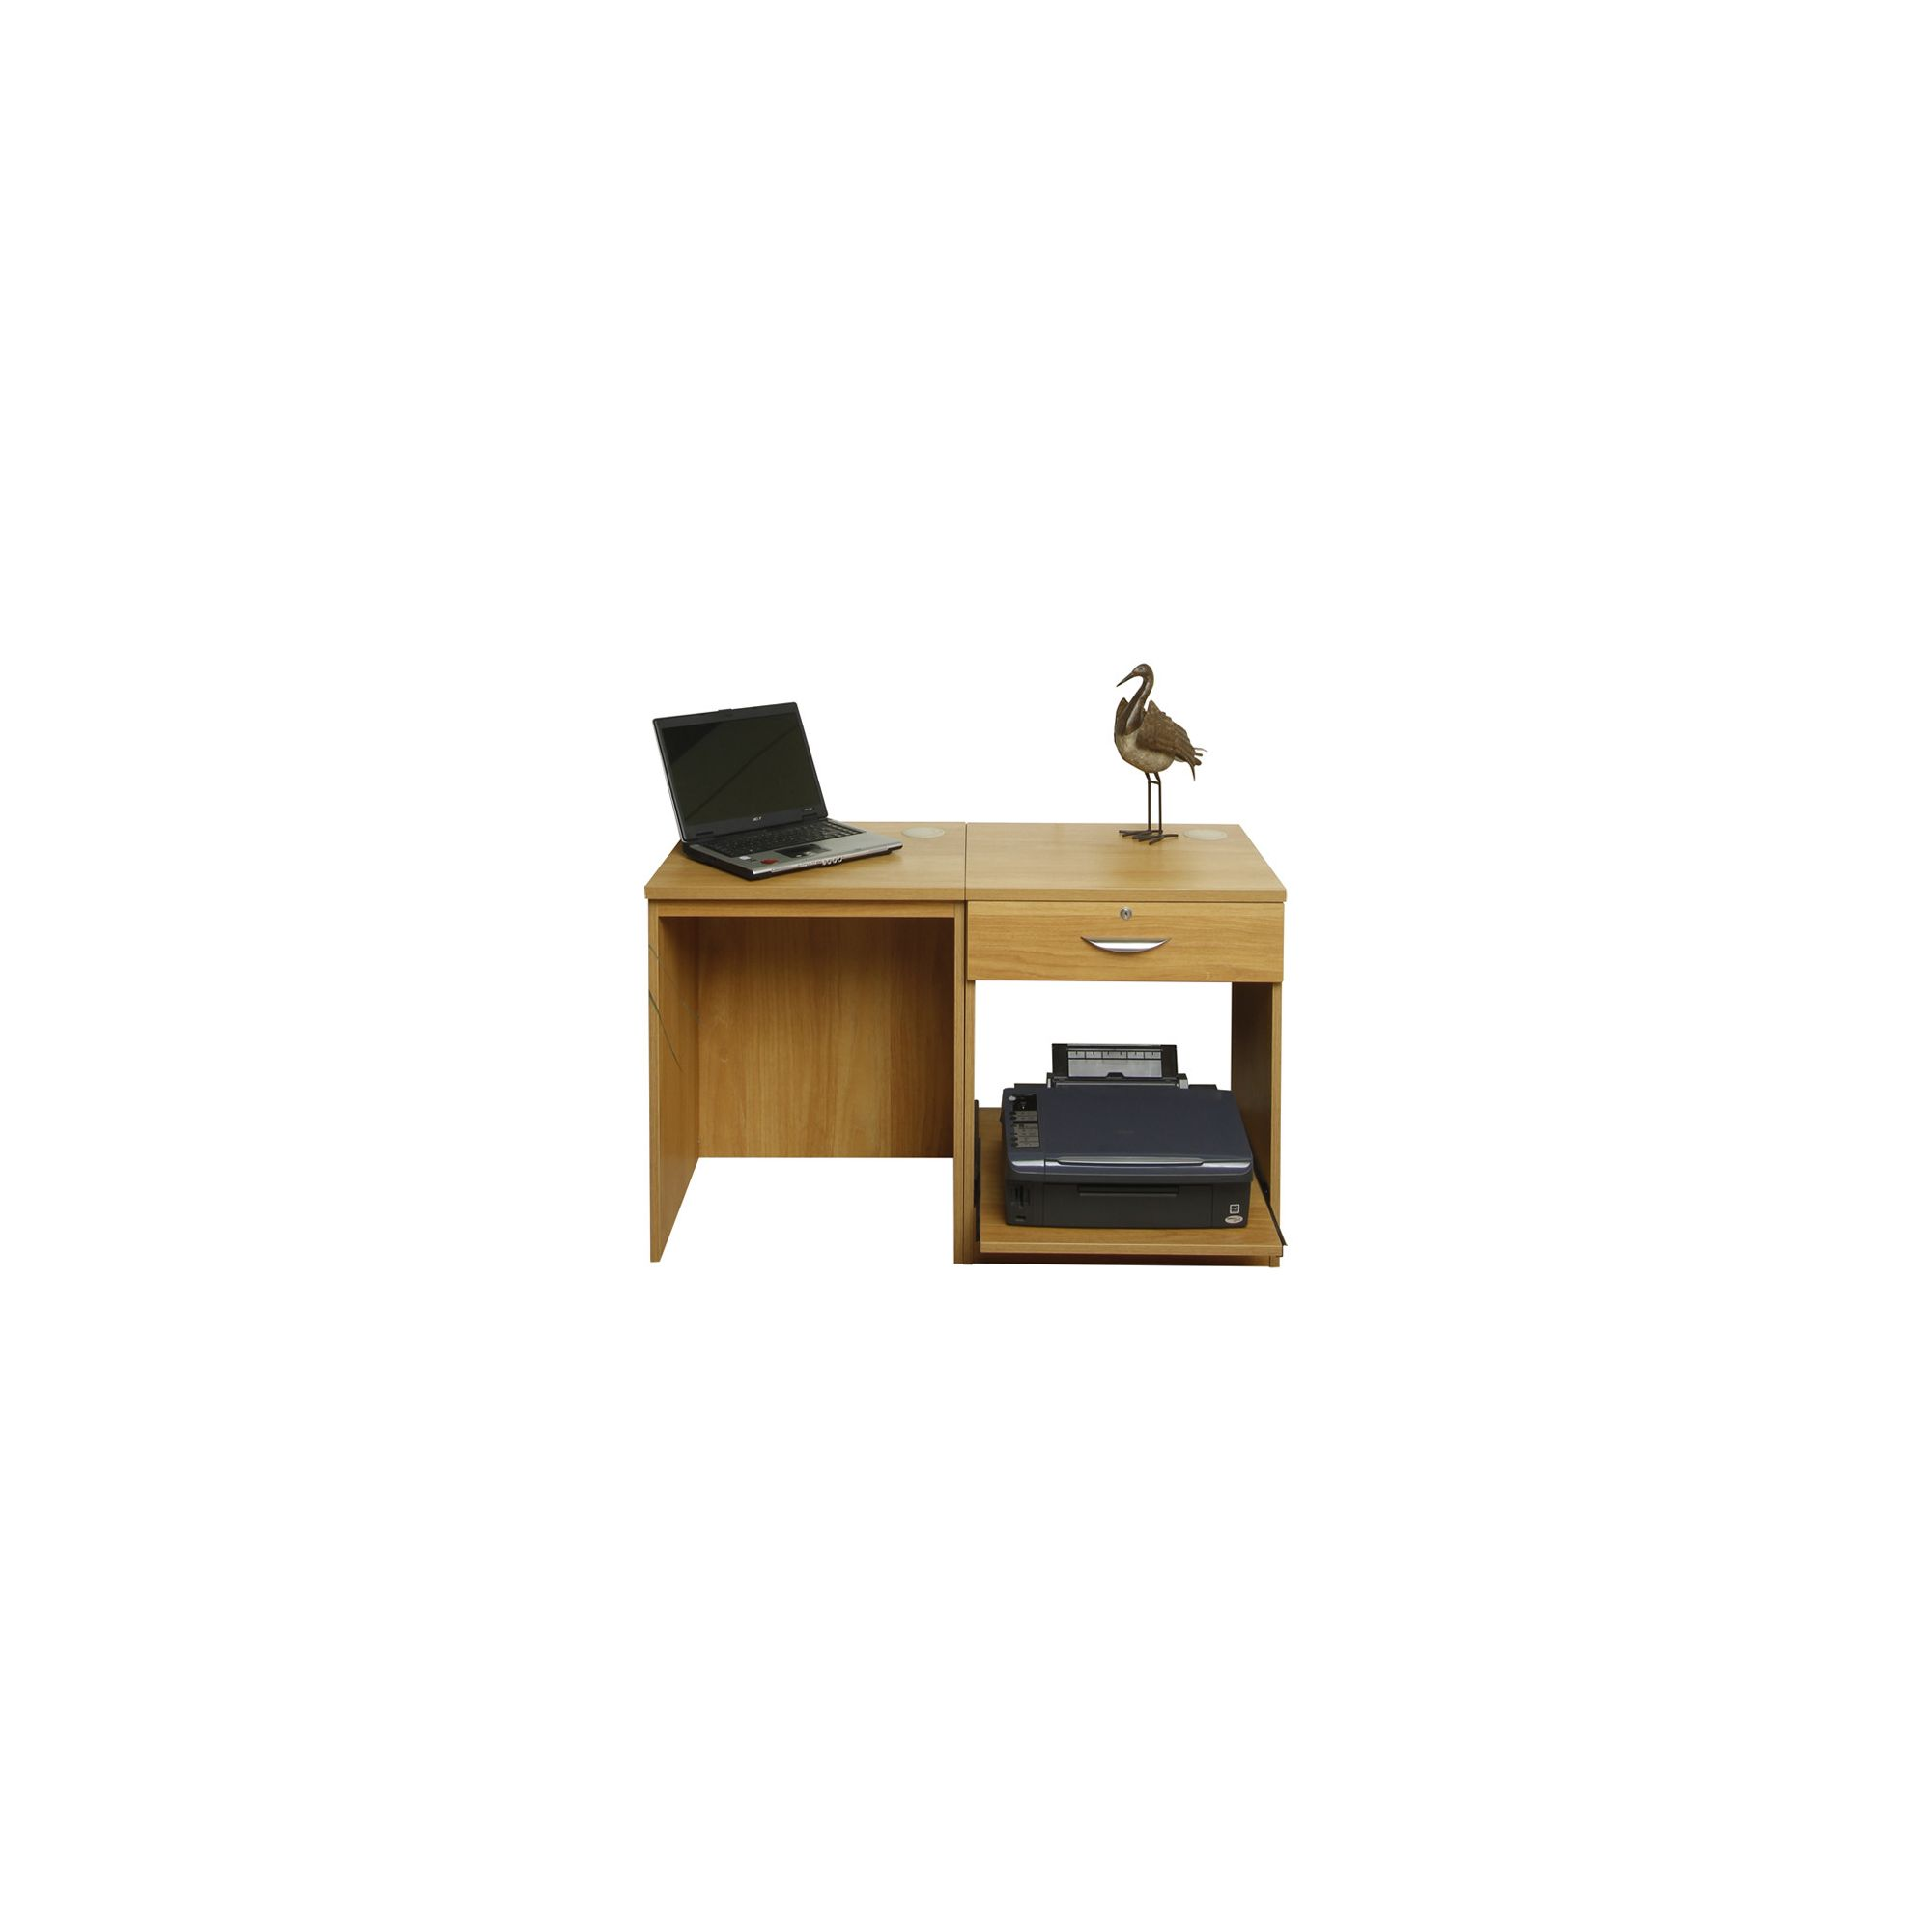 Enduro Home Office Desk / Workstation with Drawer and Printer Storage - Walnut at Tesco Direct